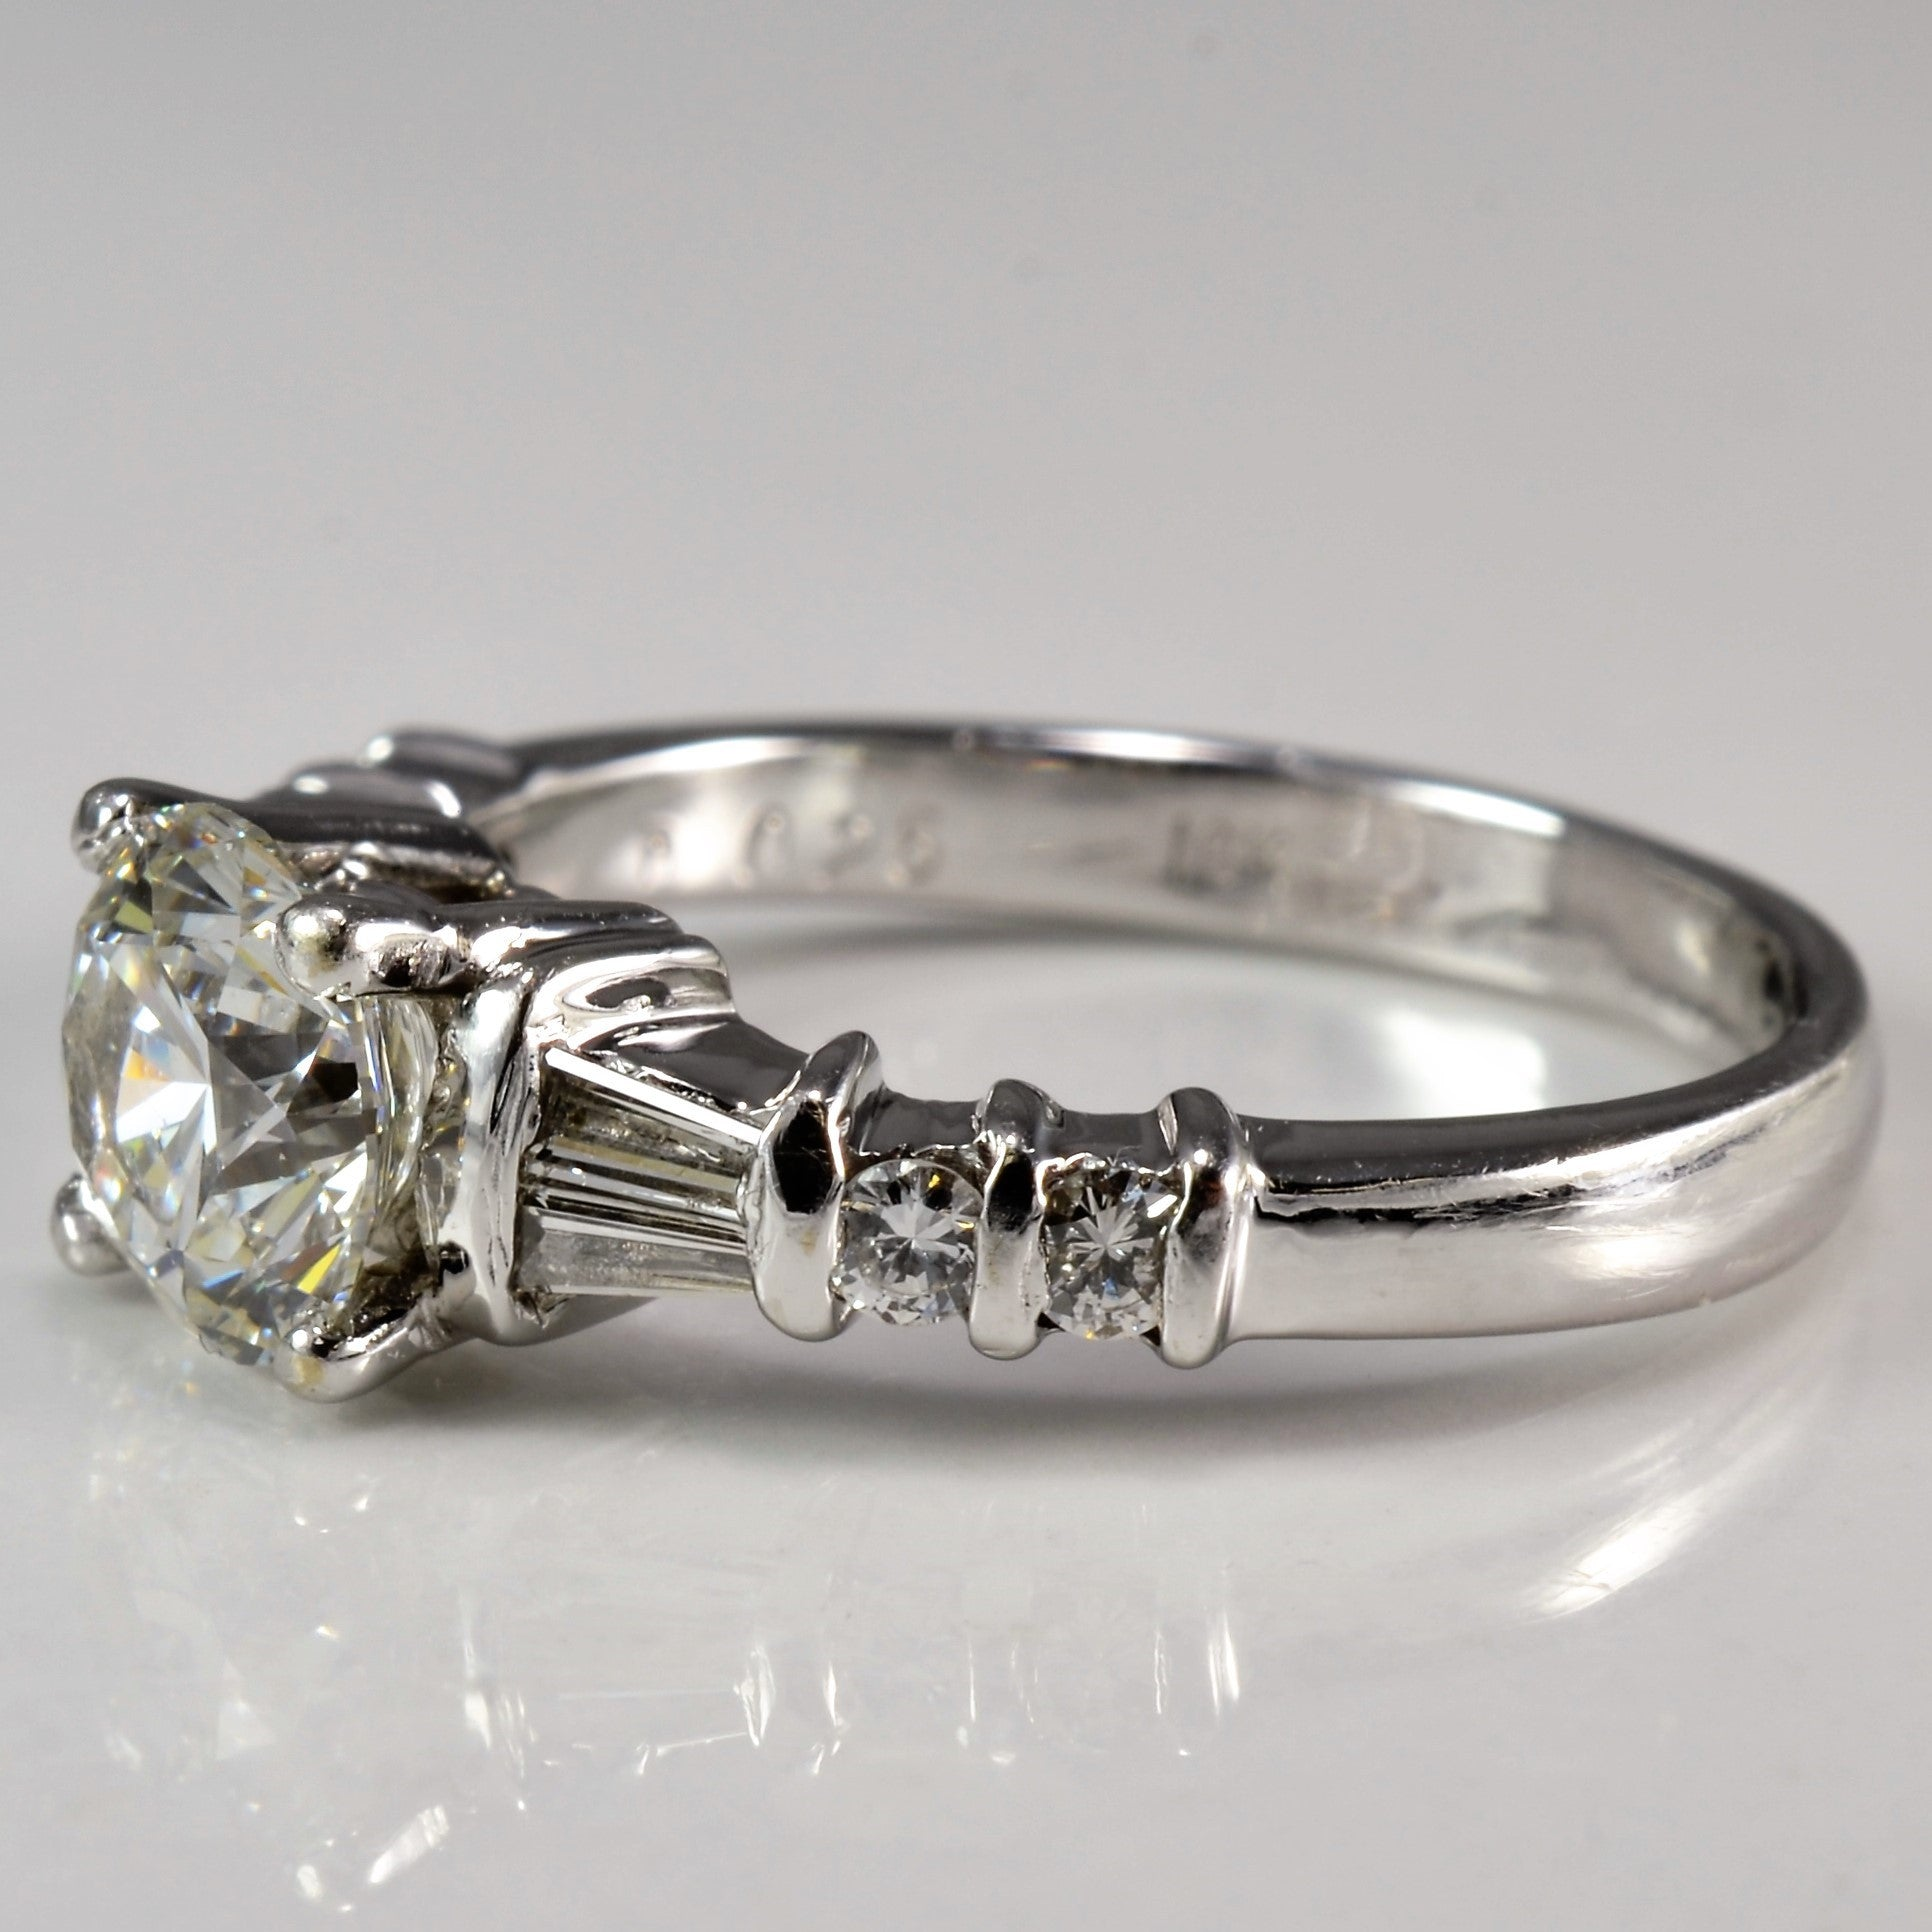 Stunning GIA Diamond Engagement Ring | 1.27 ctw, SZ 5 |